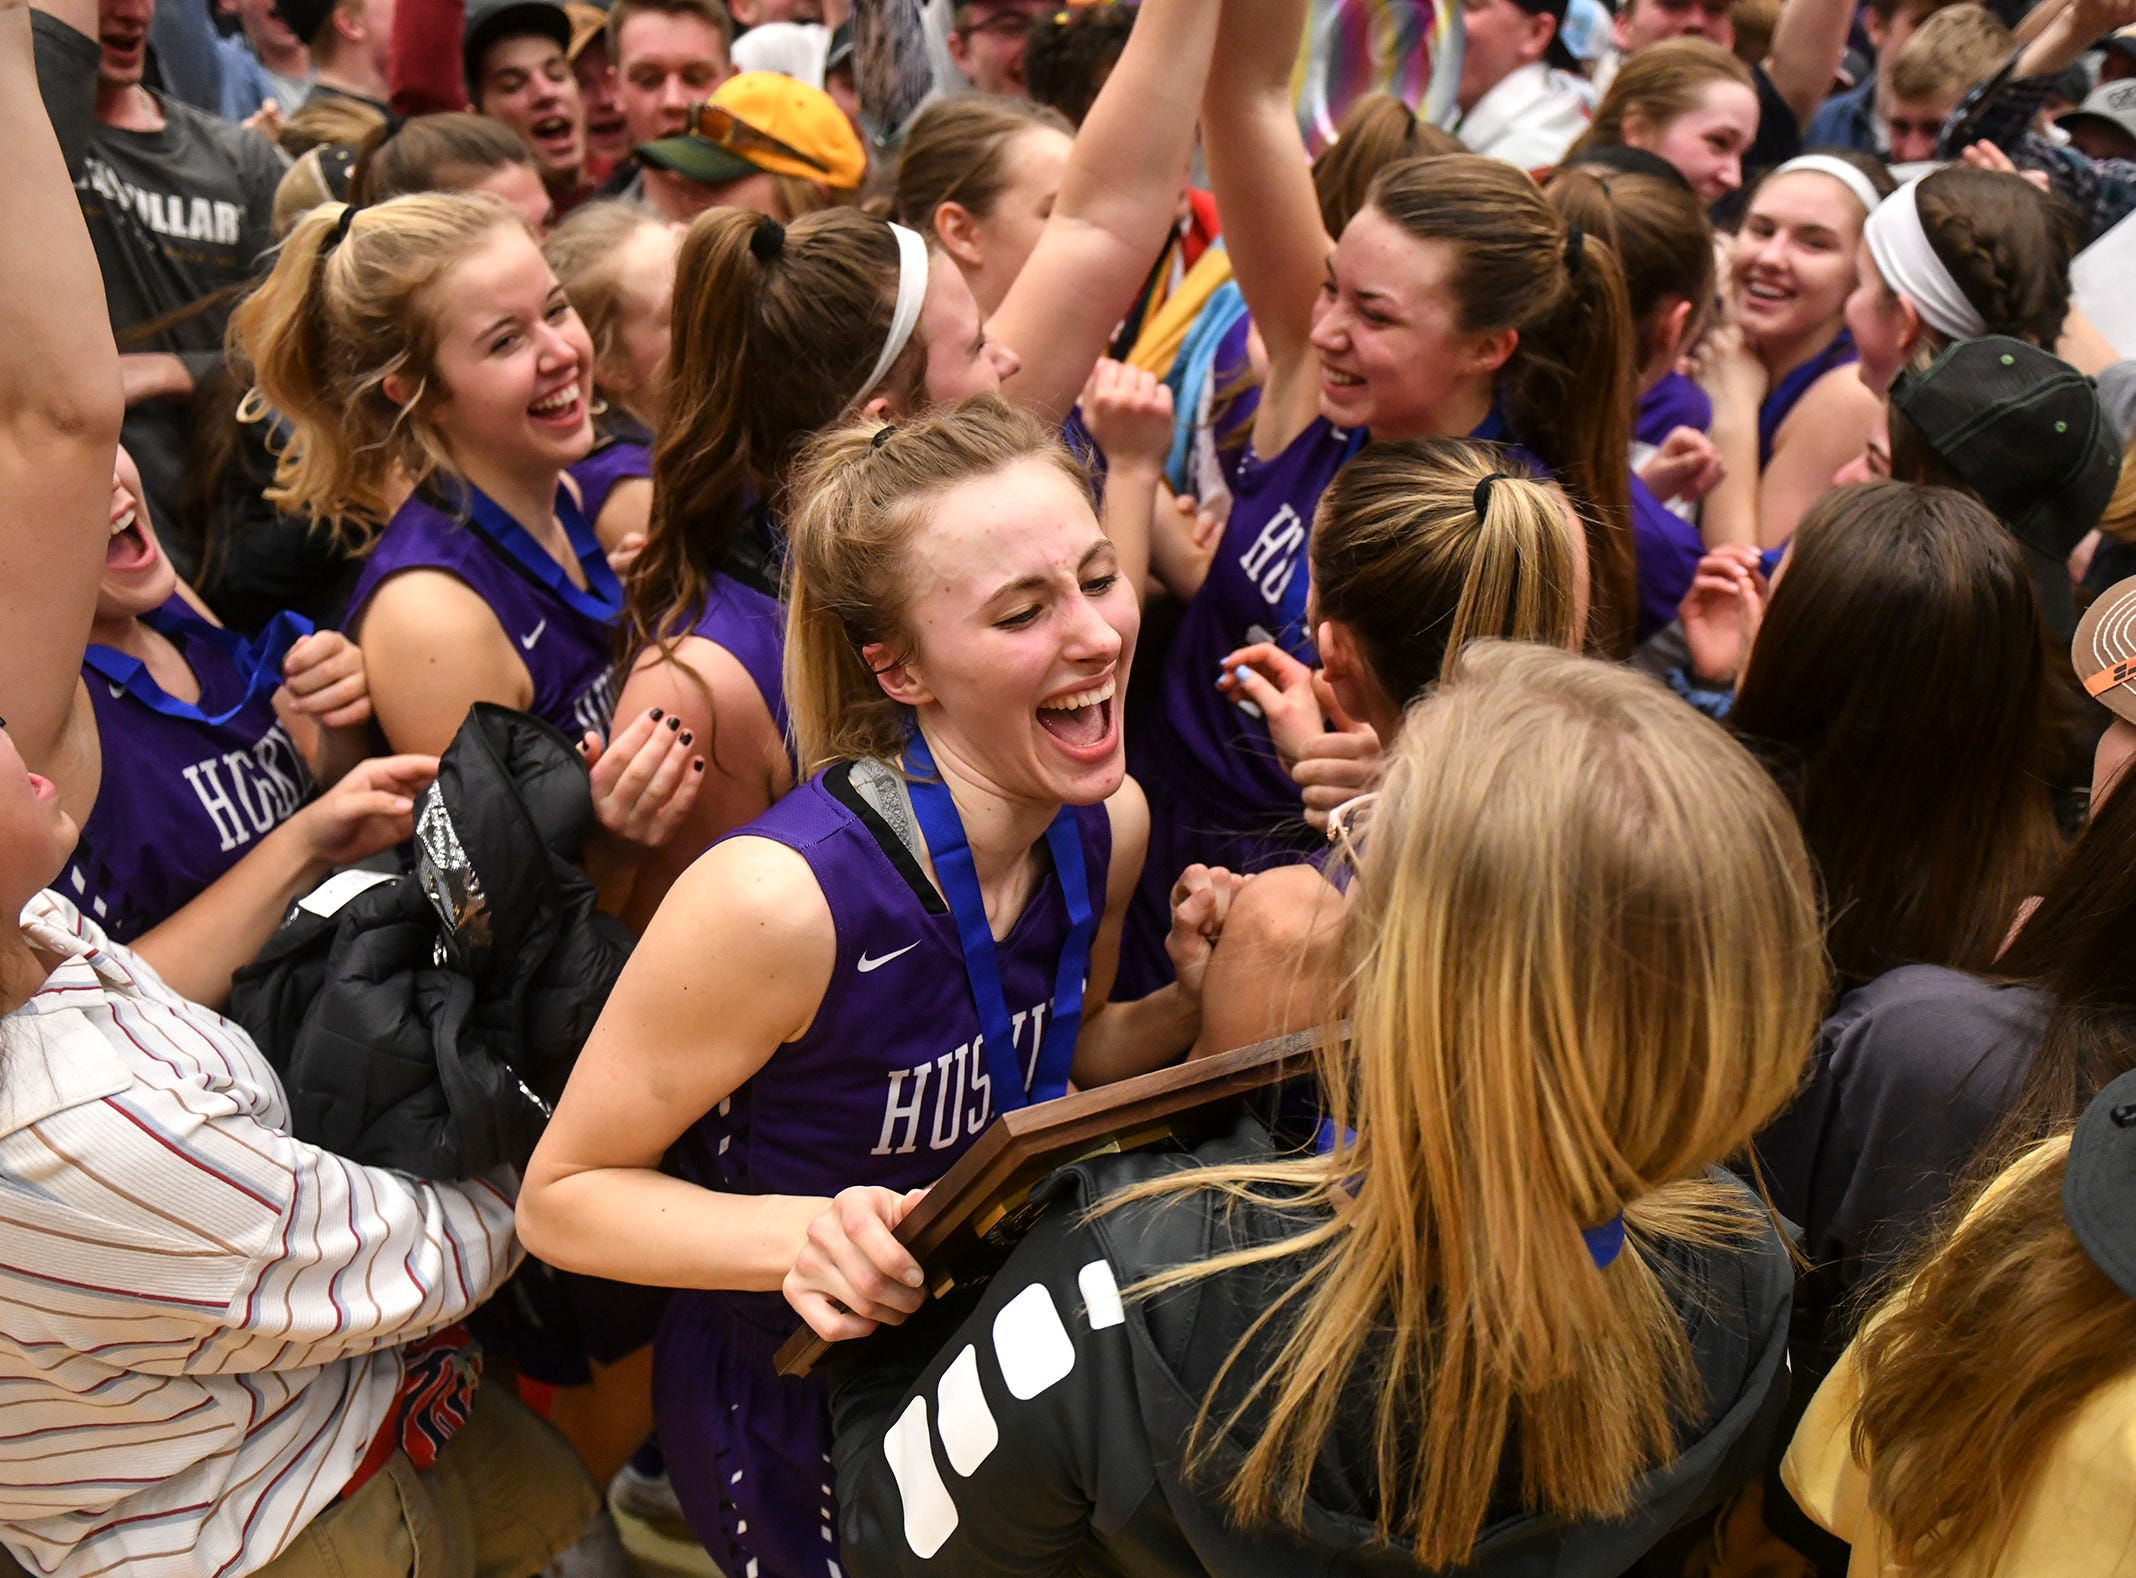 Albany players celebrate with their fans following the Section 6-2A championship game against Pine City Friday, March 8, at Halenbeck Hall in St. Cloud. Albany won 60-29.